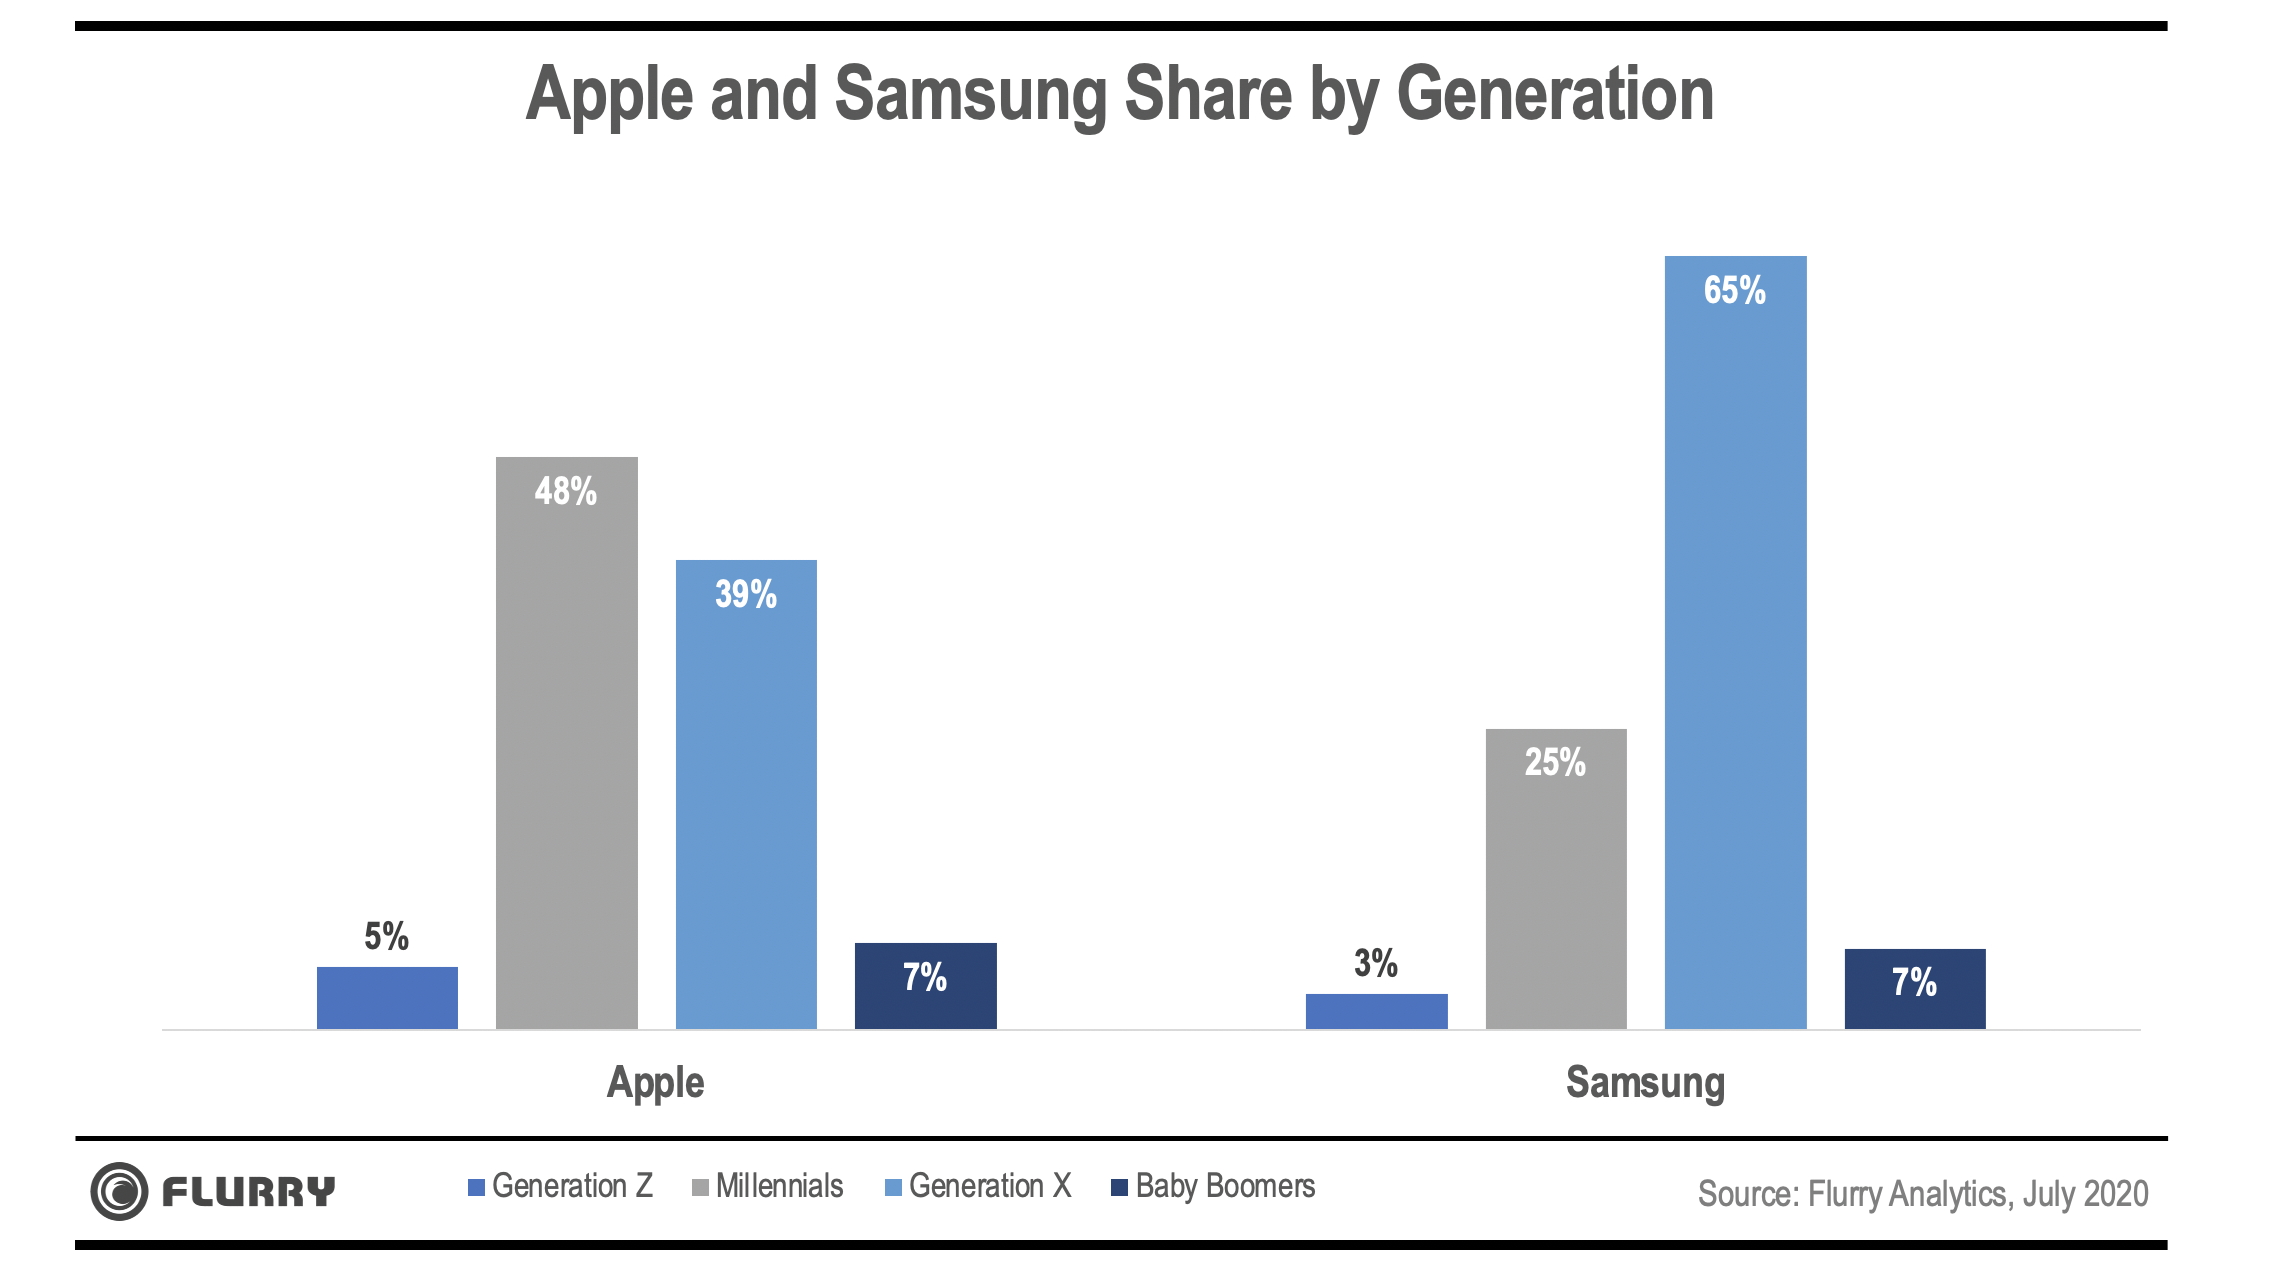 Apple and Samsung Market Share by Generation